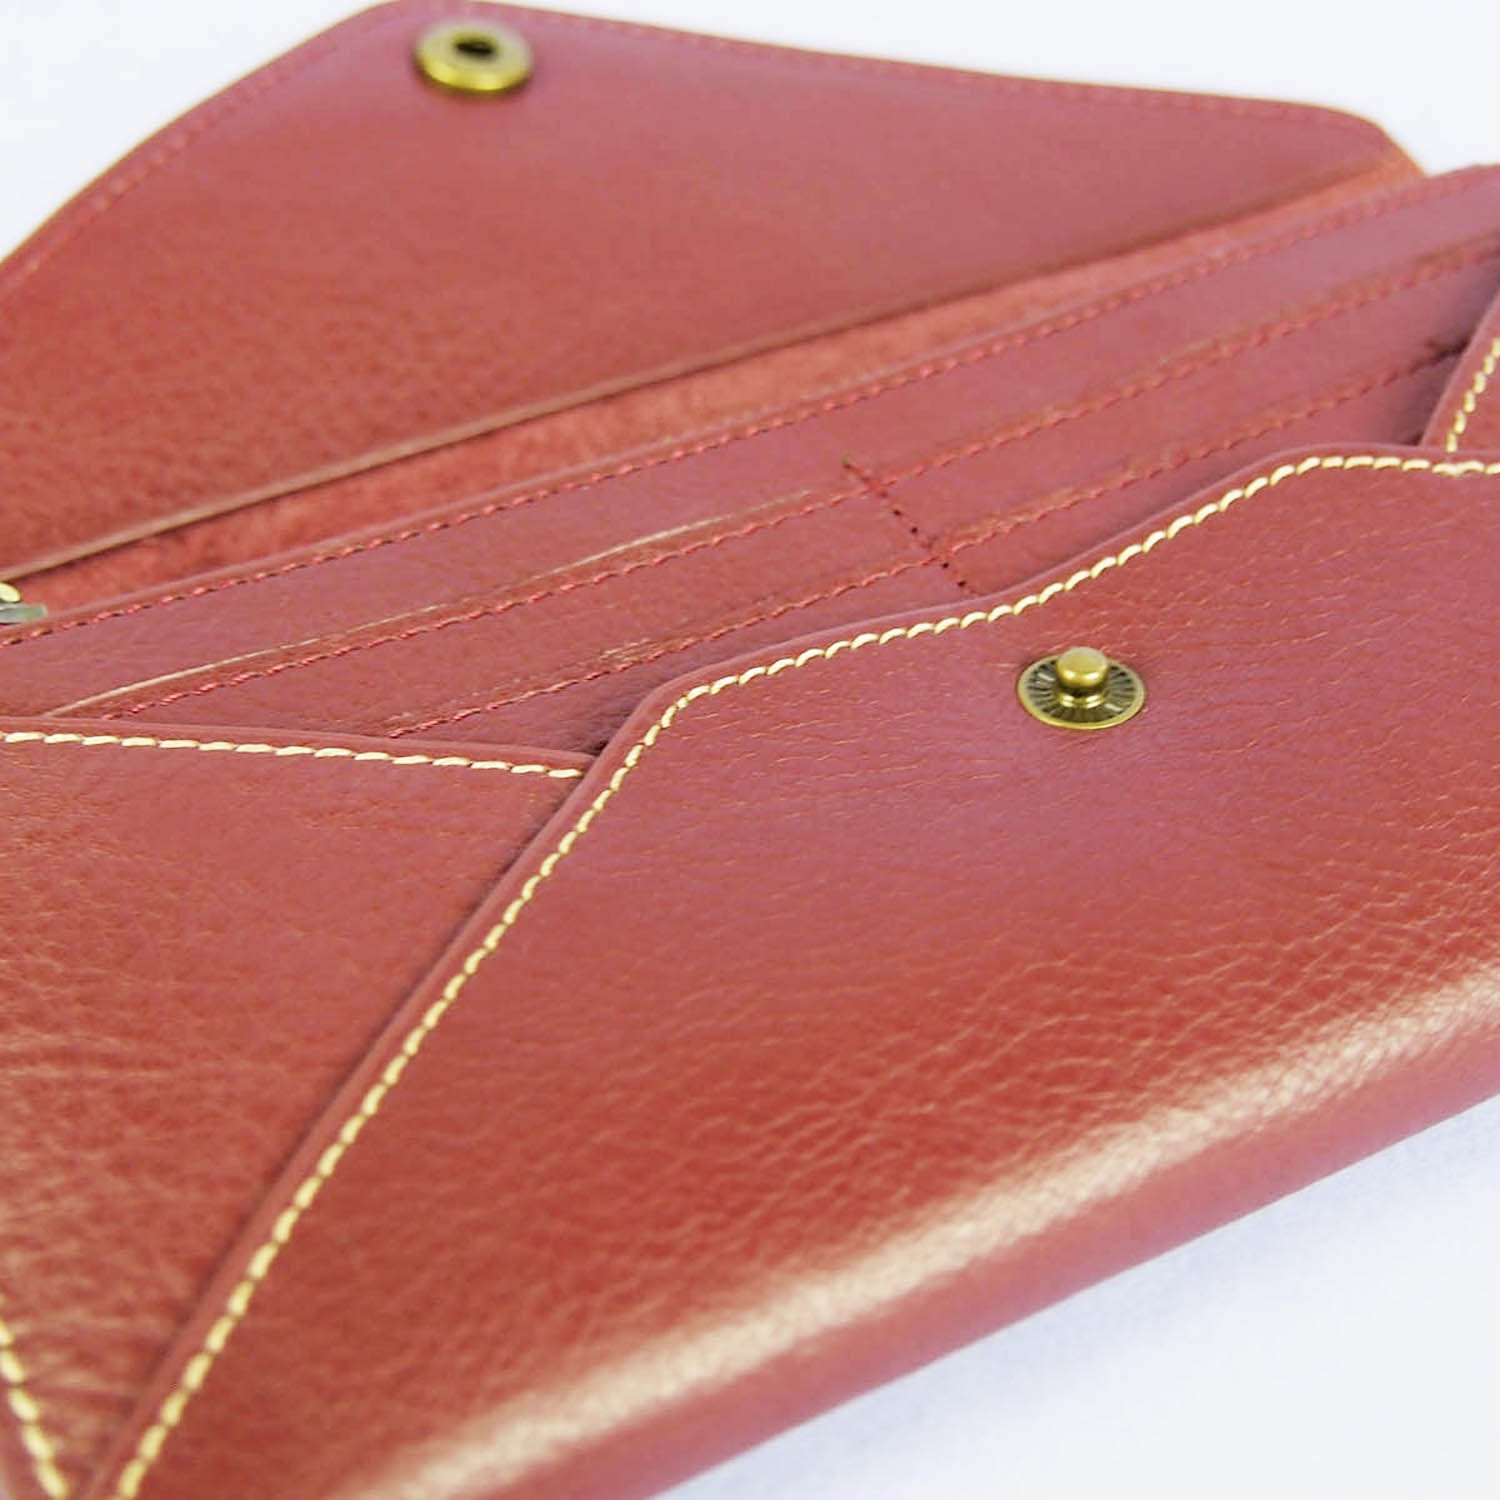 Butterfield bree Wallet Interiorl View